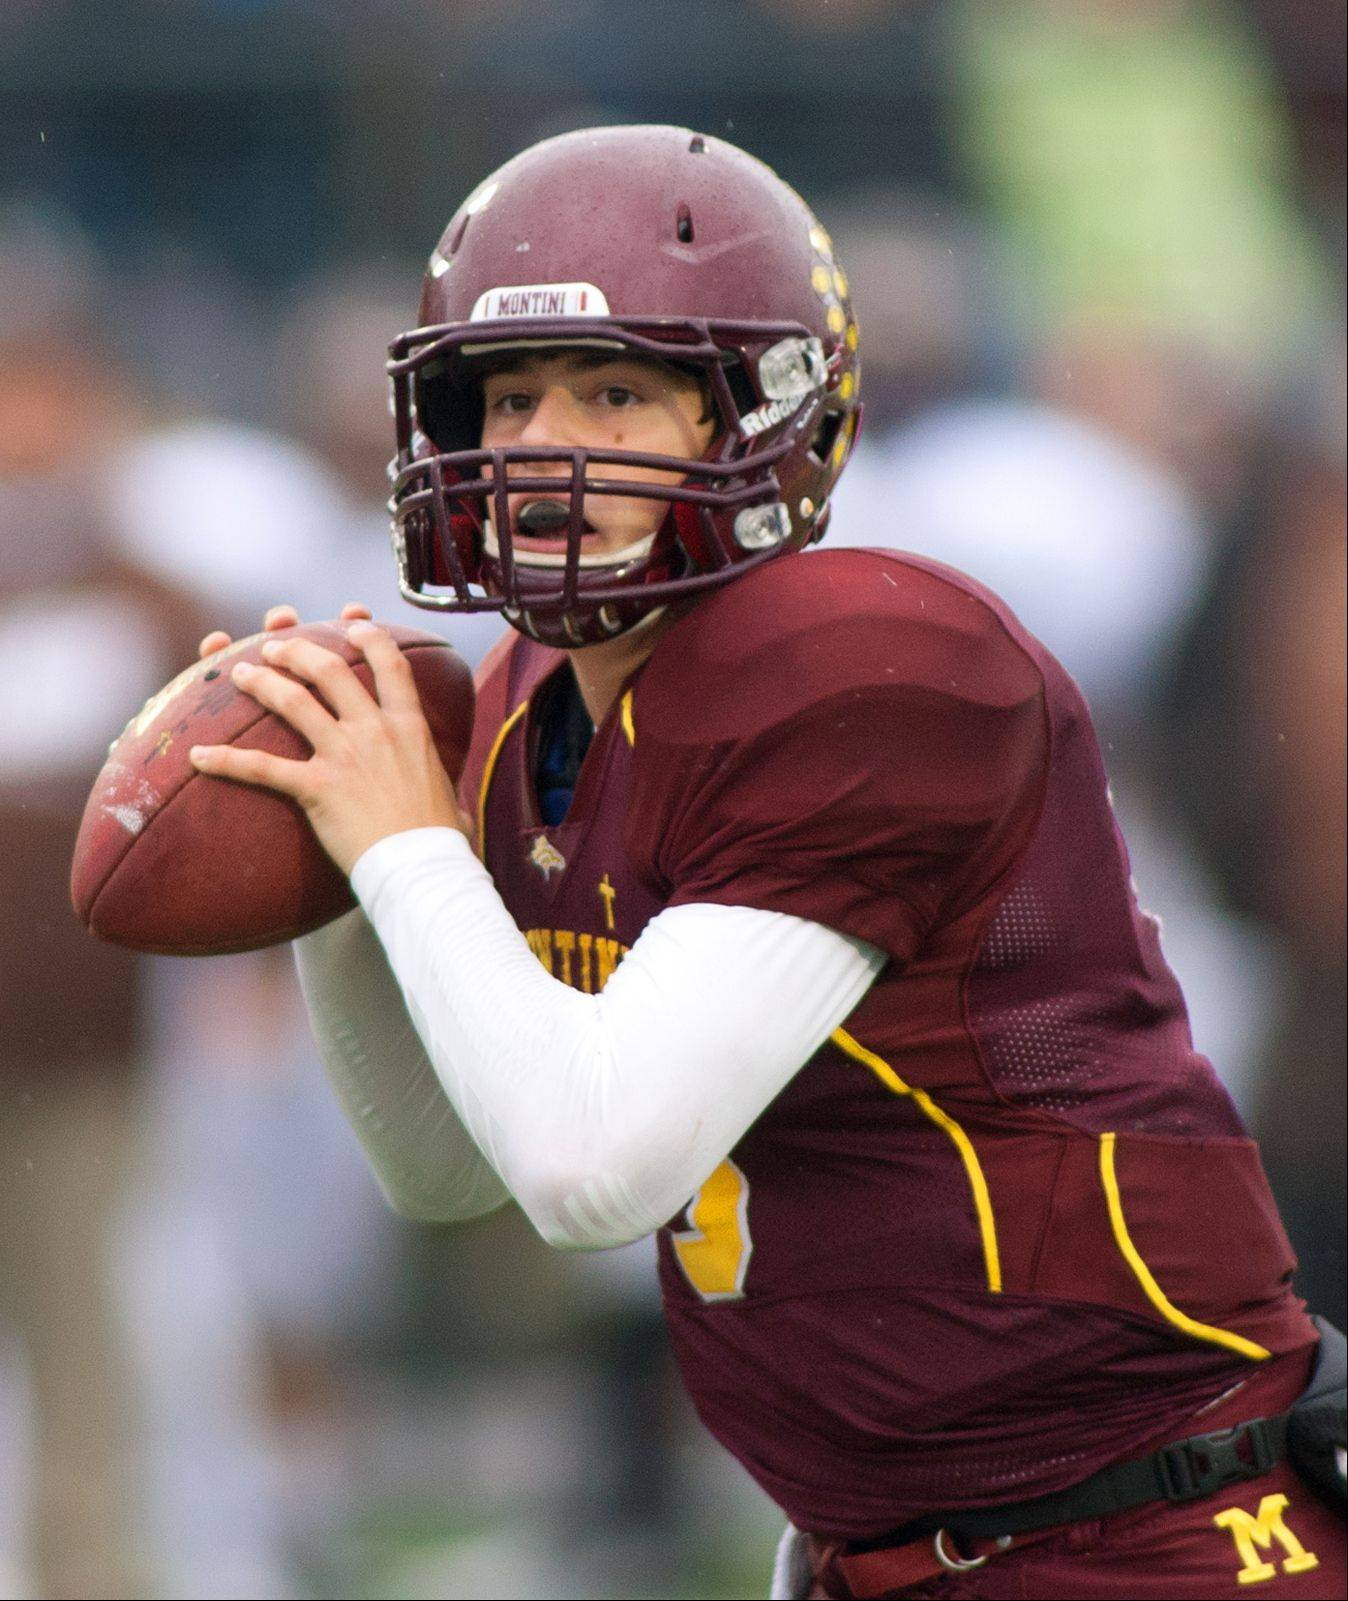 Montini Catholic quarterback Alexander Wills looks to the end zone against Joliet Catholic.